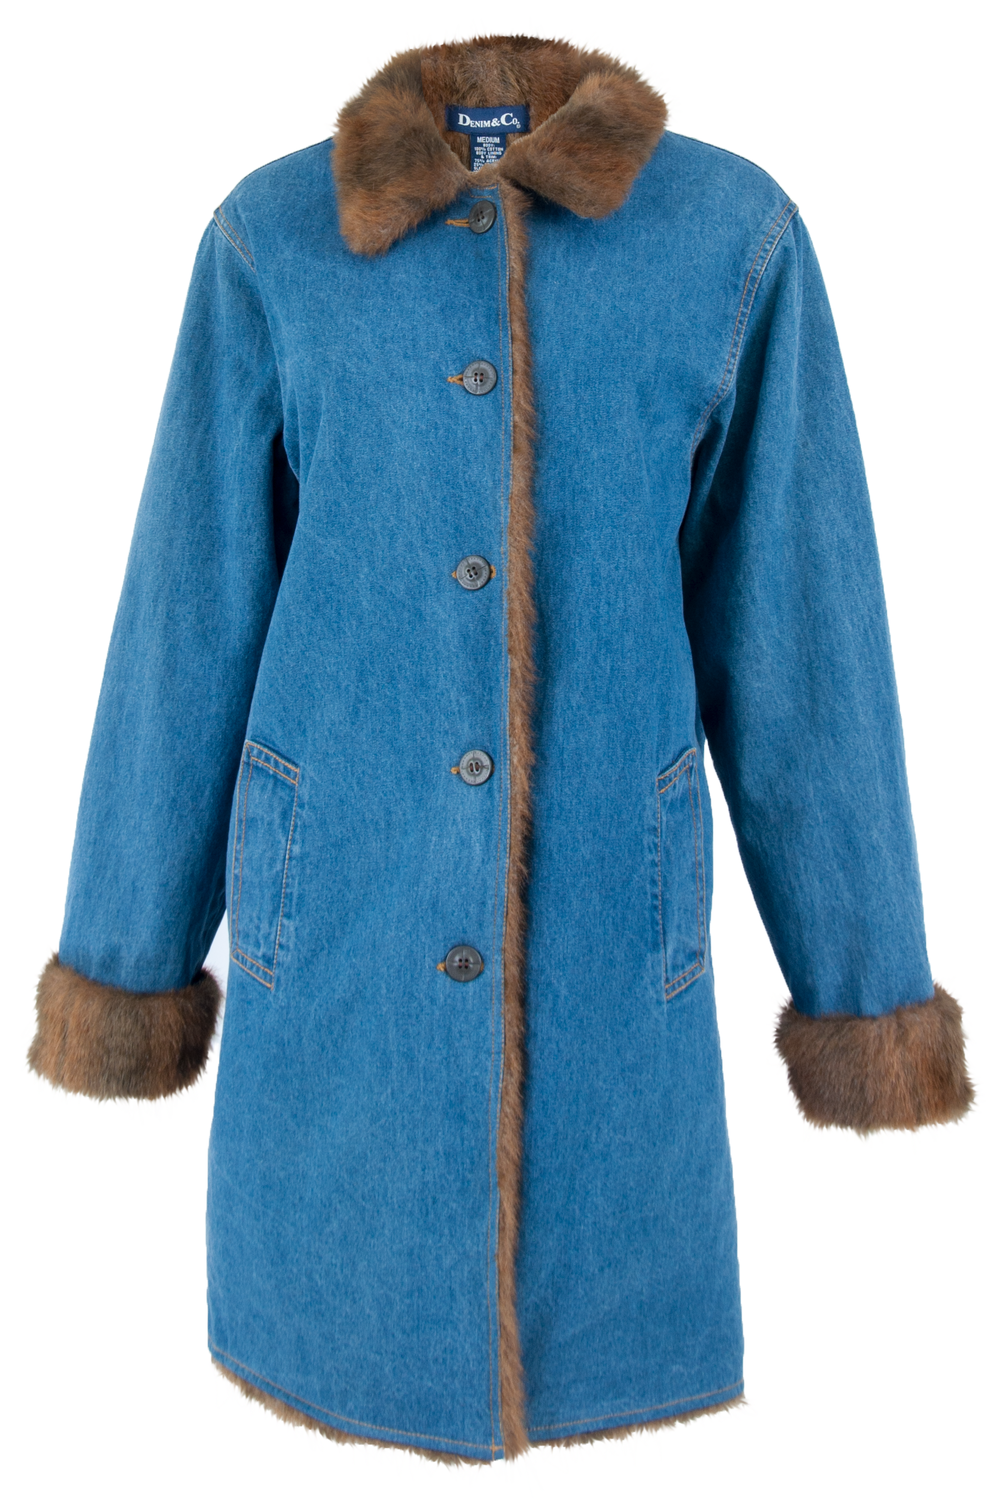 Front view of a vintage long-length denim coat with faux fur collar trim and lining pockets at waist and front button closure.